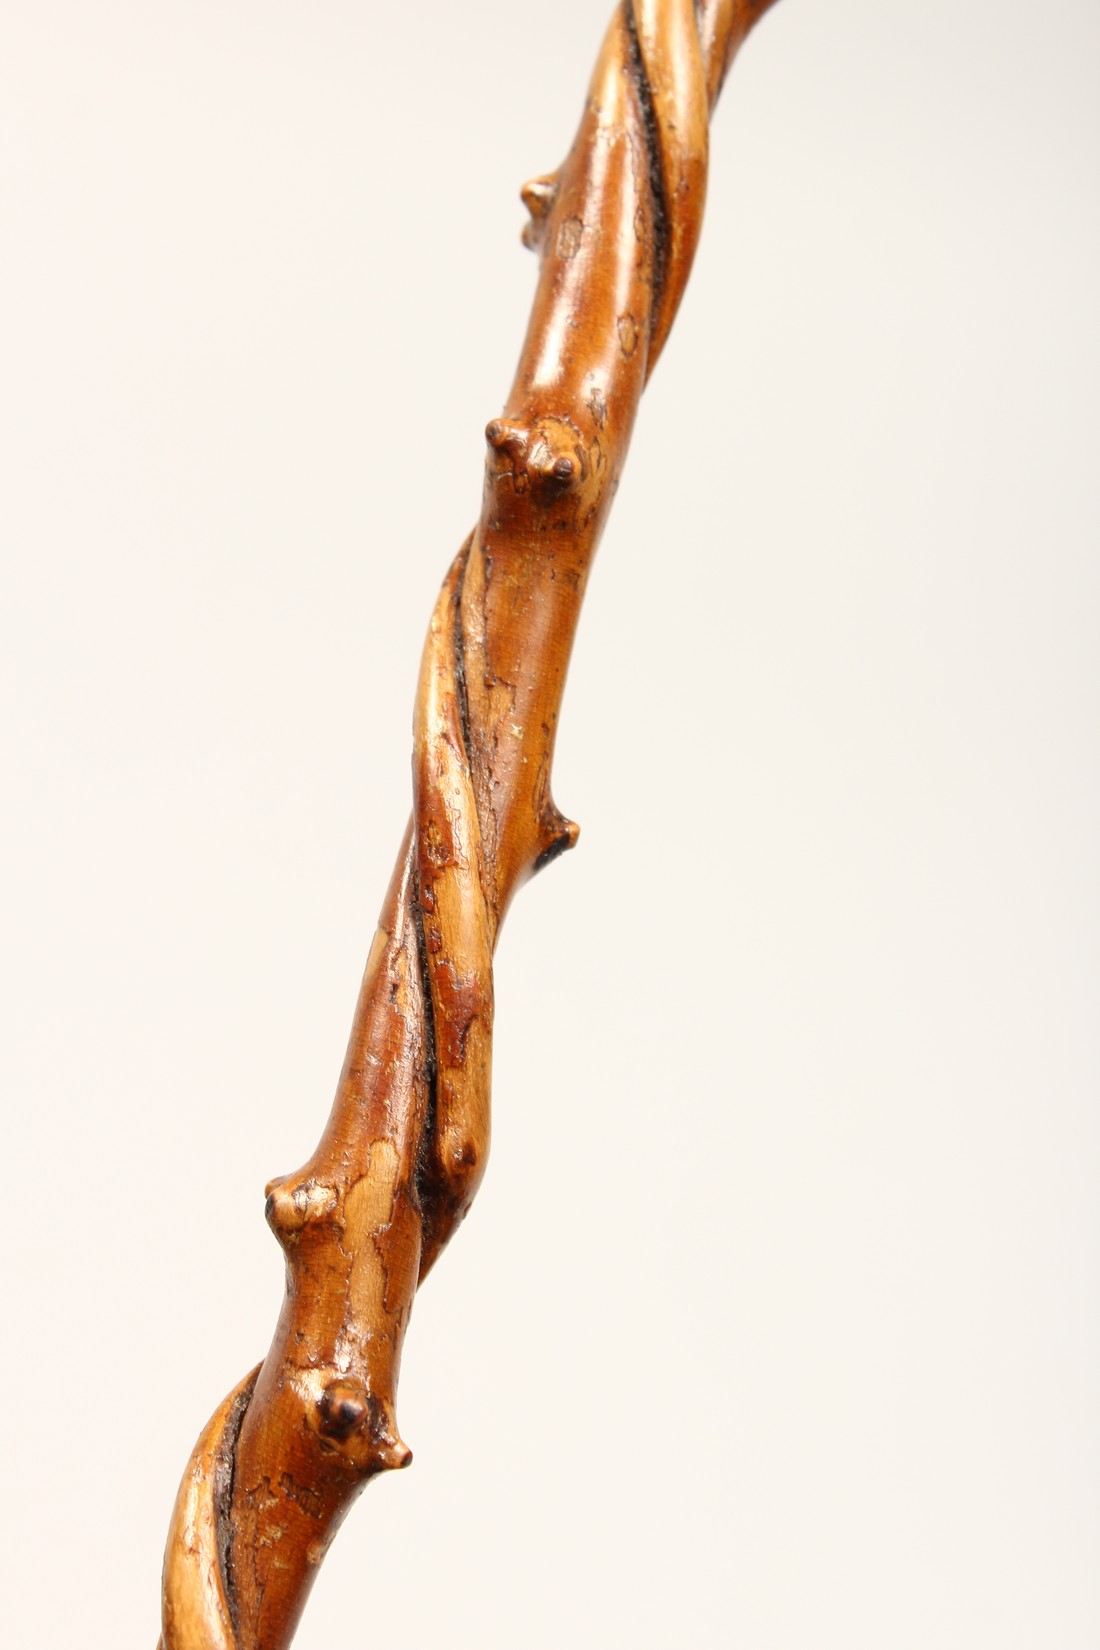 A SMALL DOG'S HEAD WALKING STICK 26ins long - Image 8 of 11